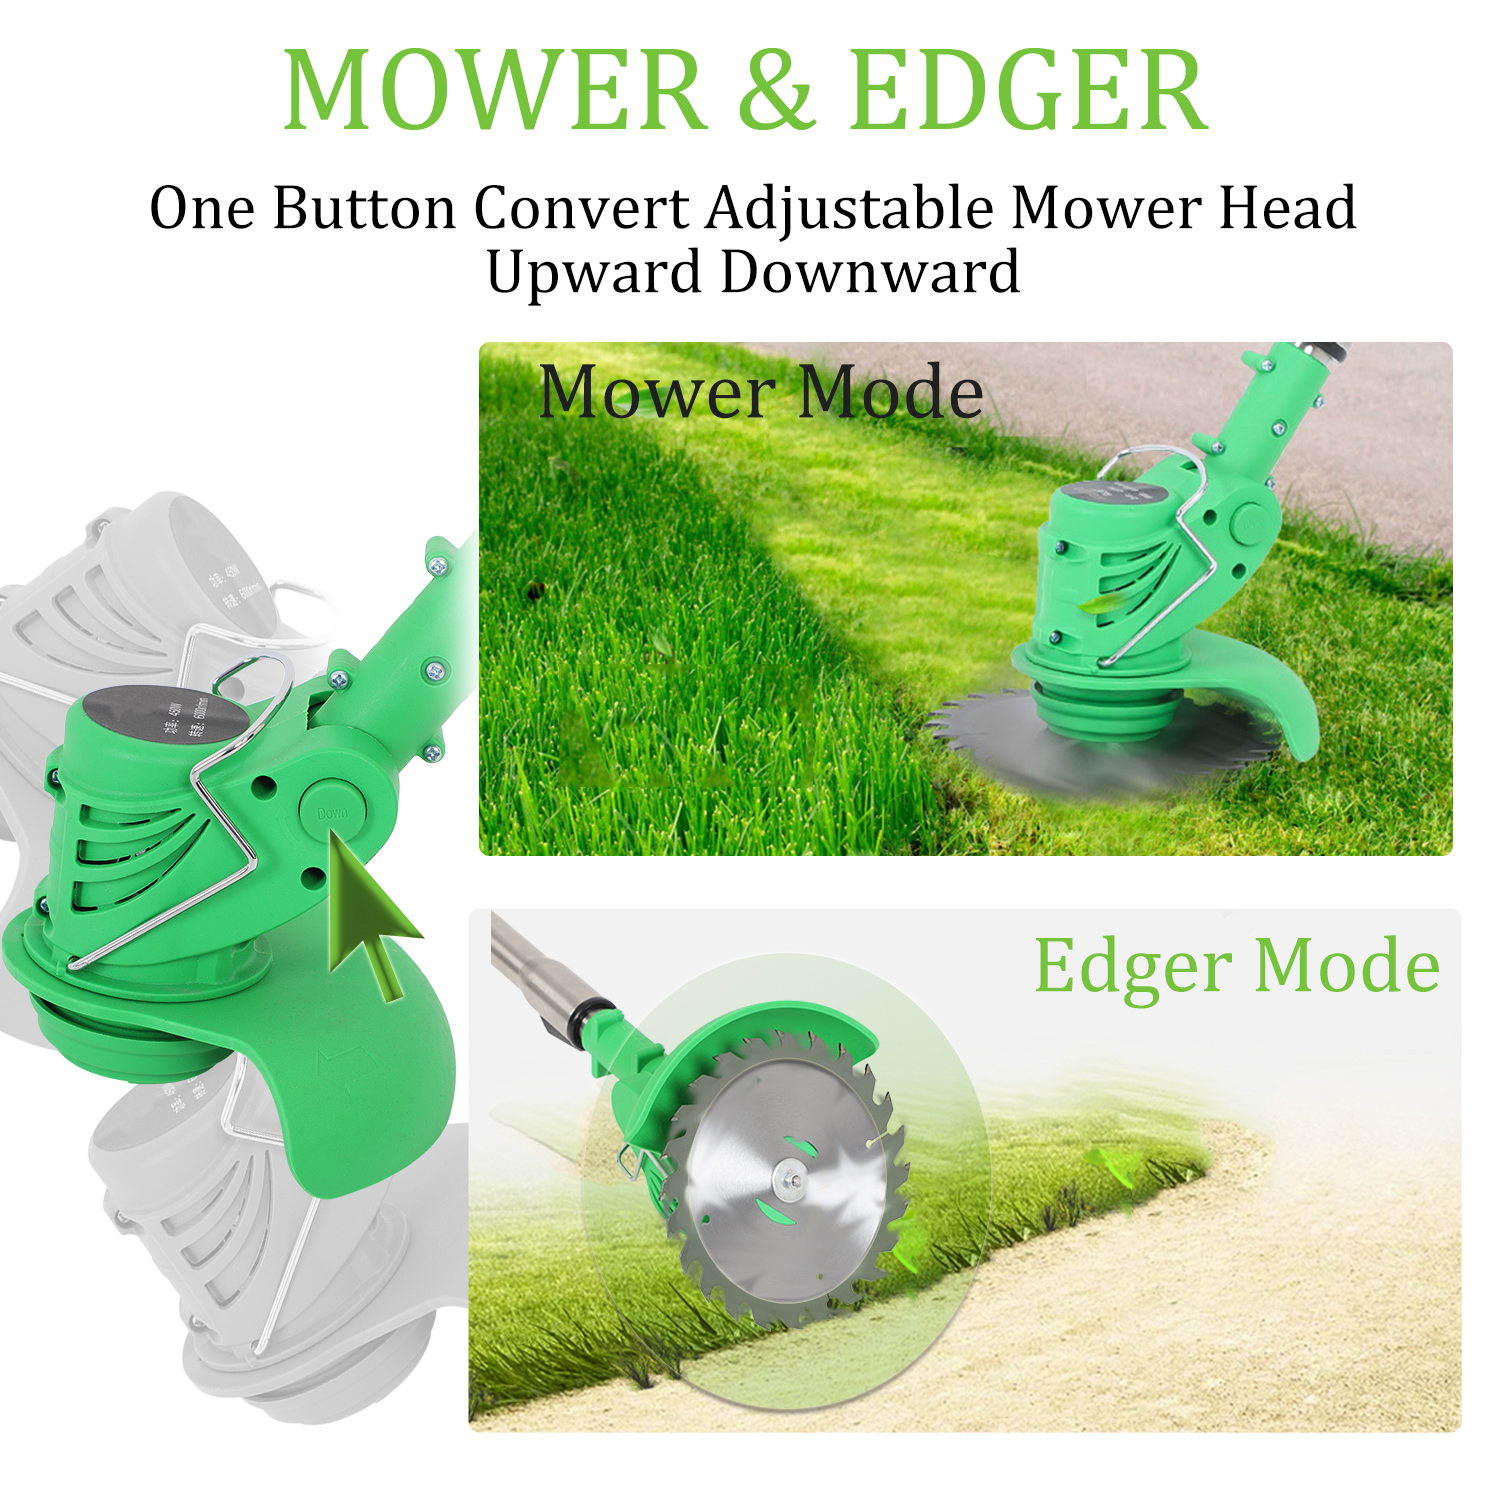 Tools : Electric Grass Trimmer Edger Lawn Mower 21V 3000mAh Lithium-Ion Cordless Weed Brush Cutter Kit Garden Tools Grass Cutter Brush